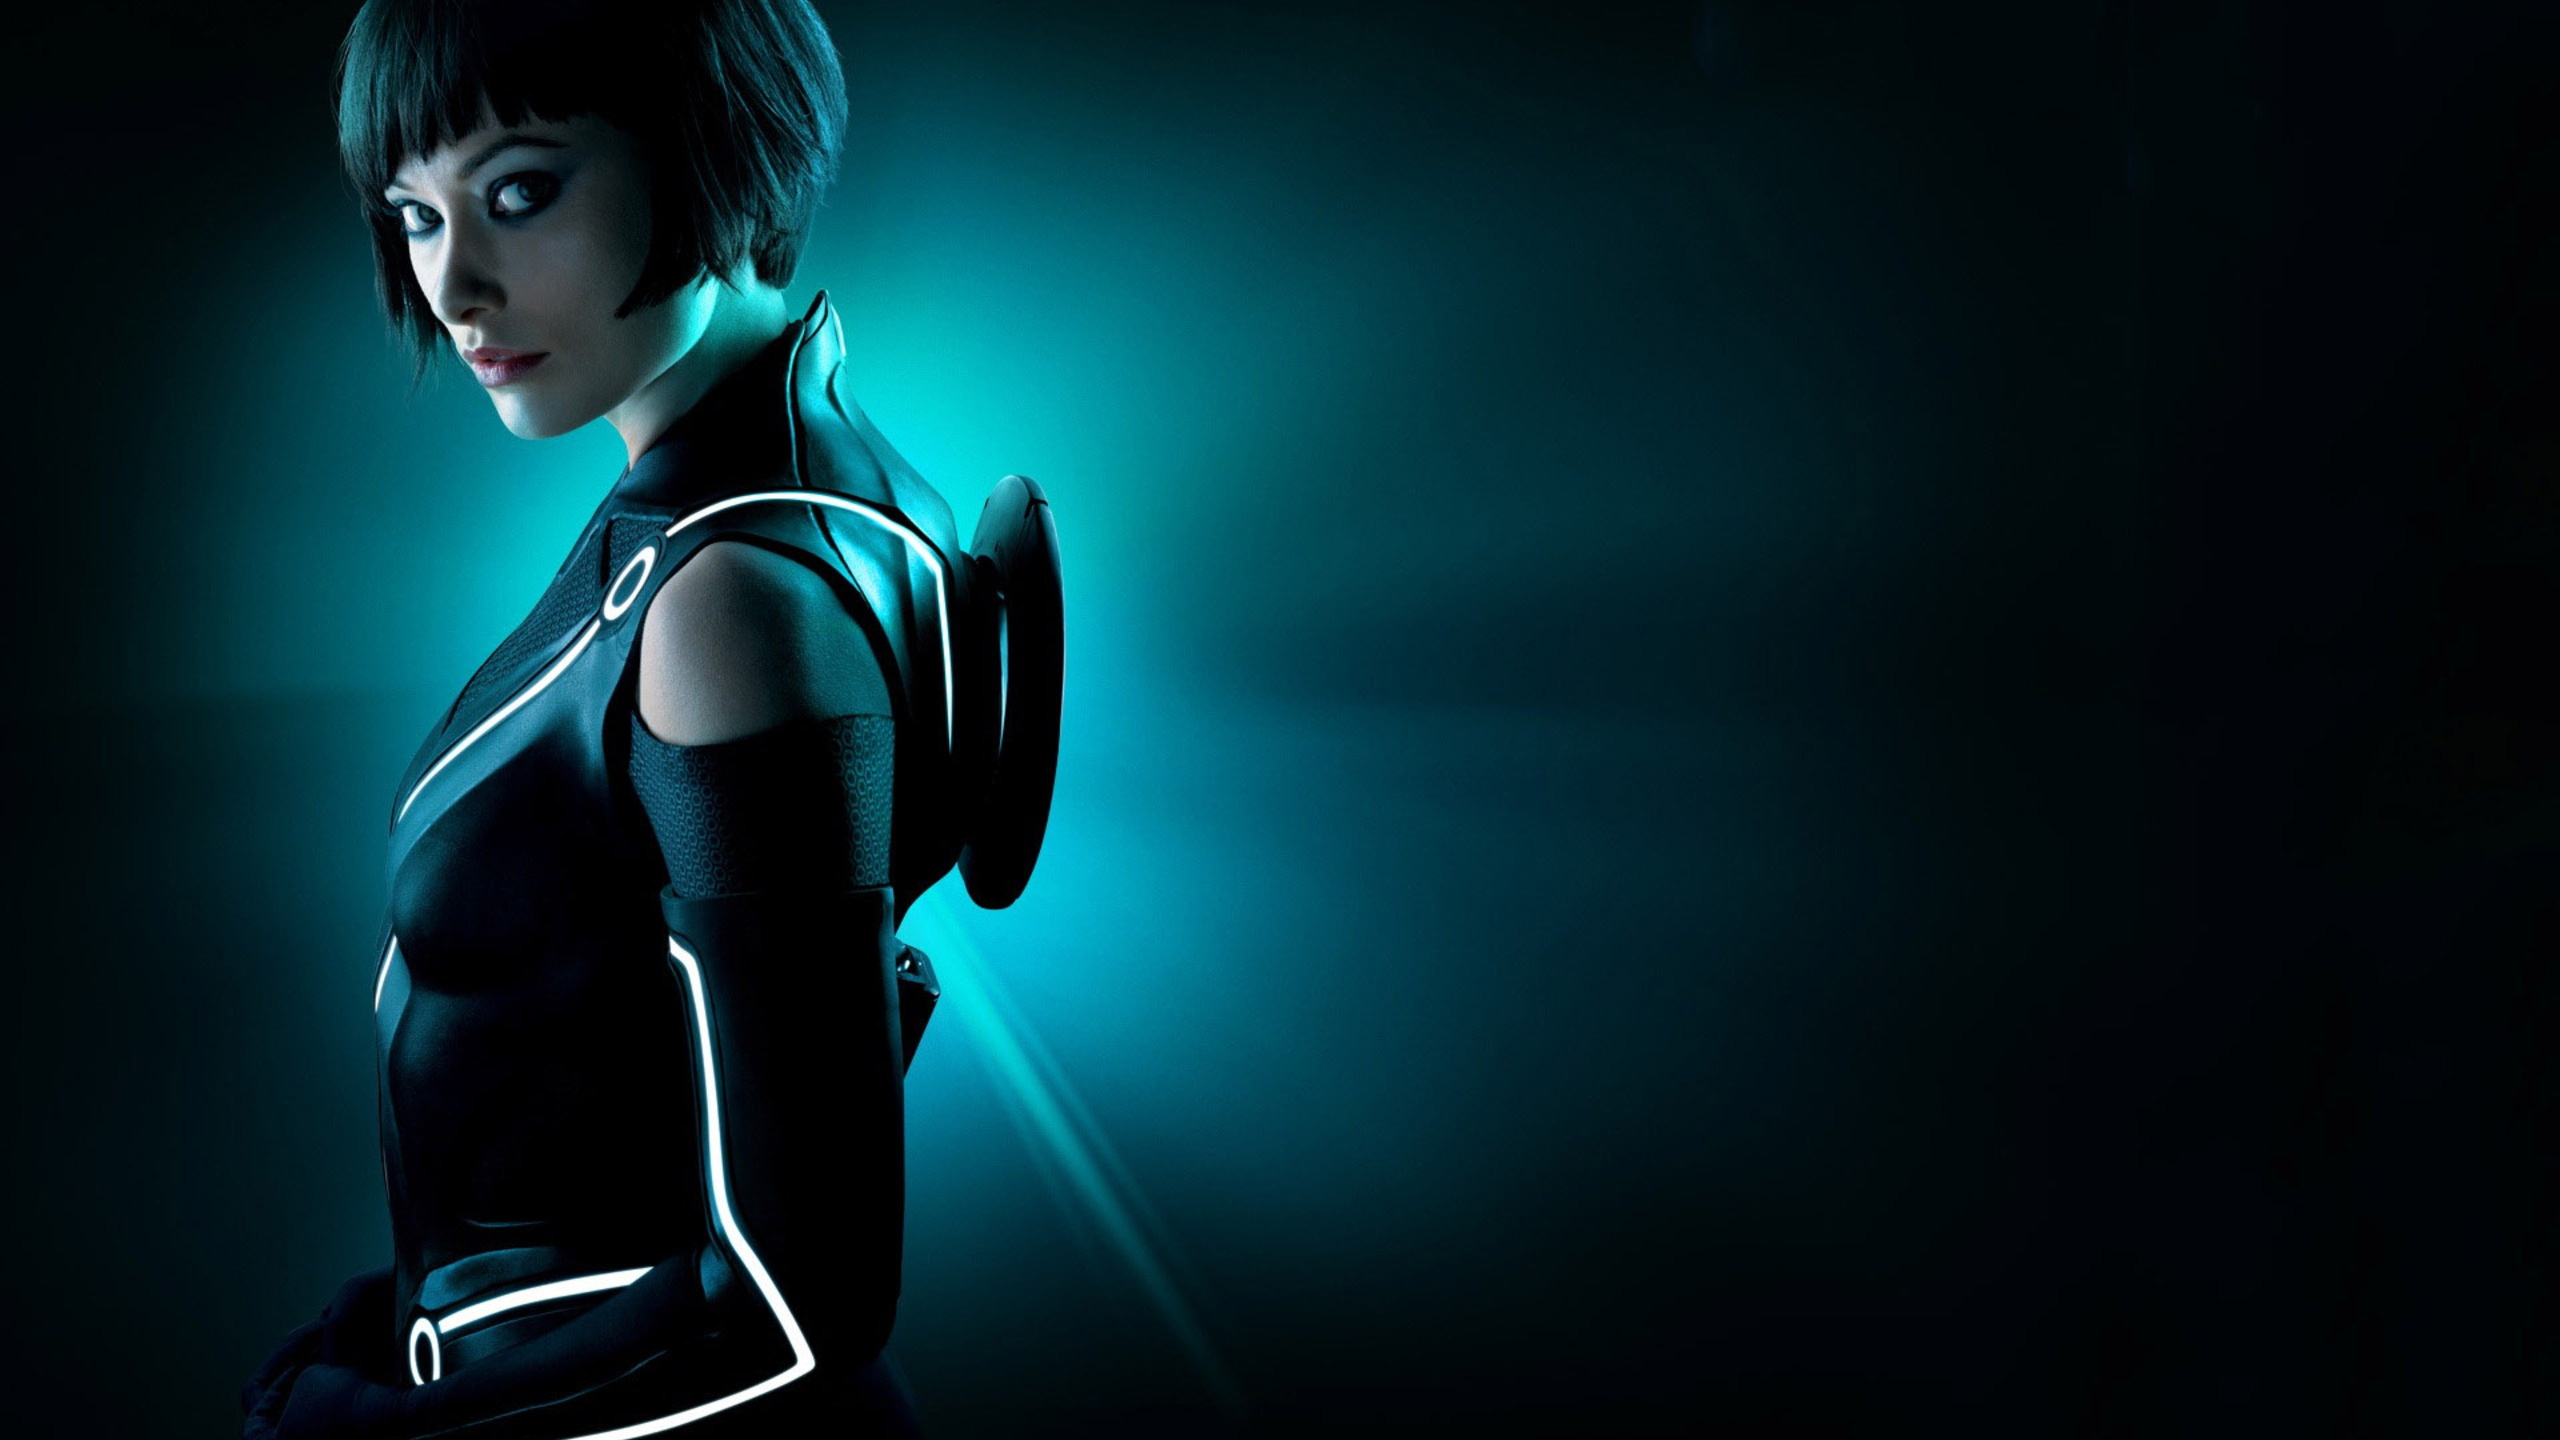 2560x1440 tron legacy movie 1440p resolution hd 4k wallpapers